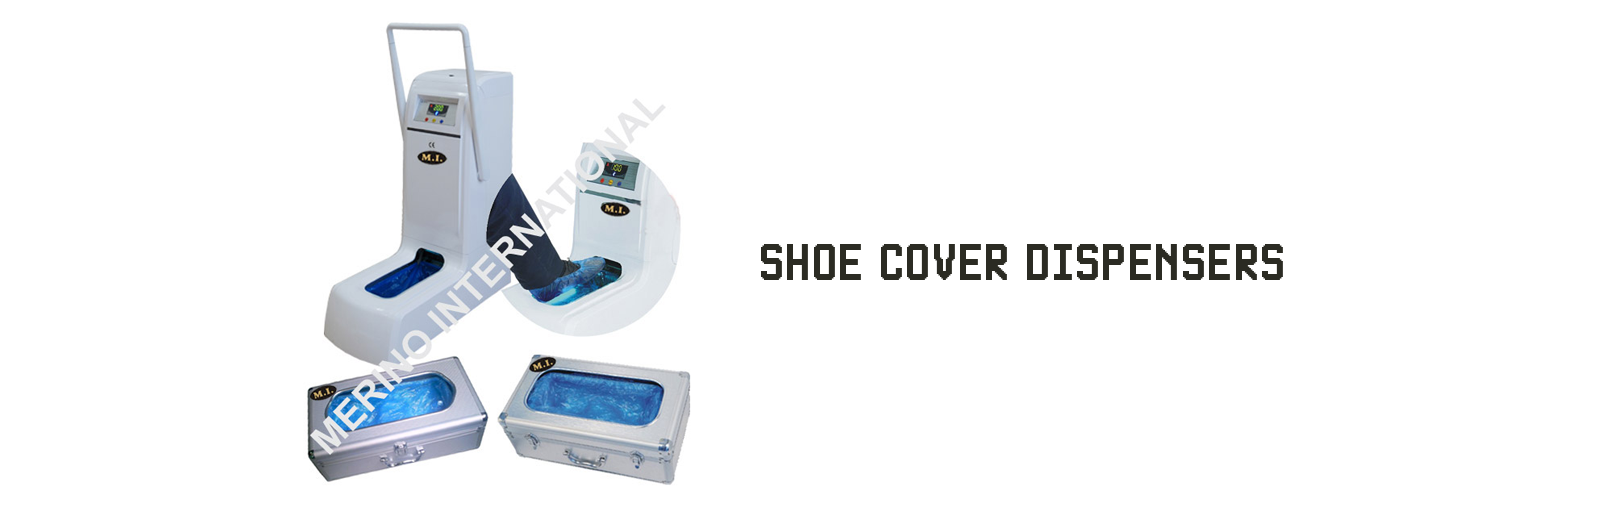 Are You Looking for Surgical and Medical Equipments